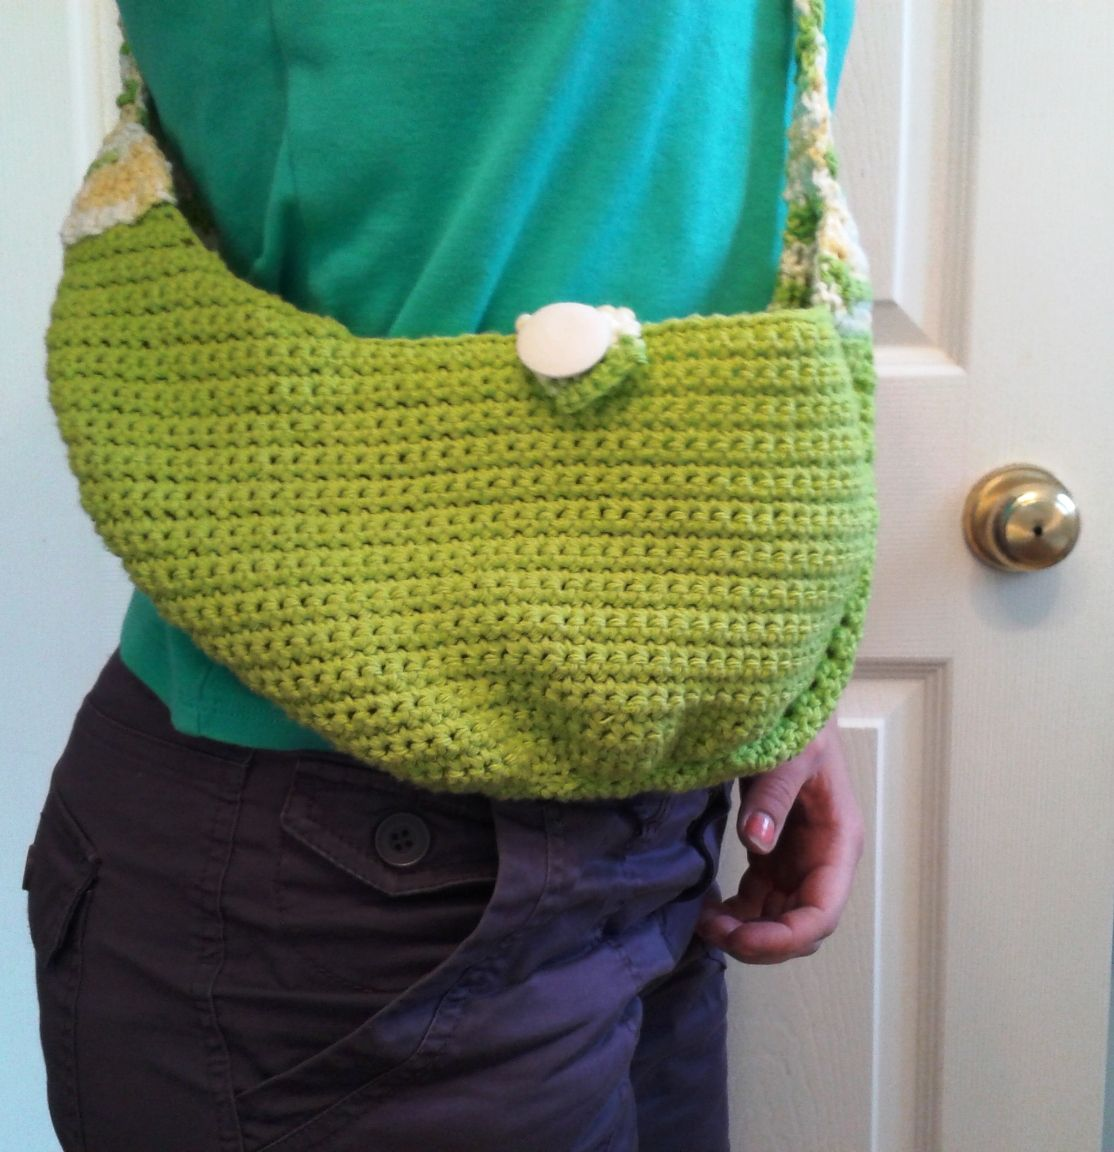 Crochet hobo purse free pattern | Pinterest | Free pattern, Handbag ...